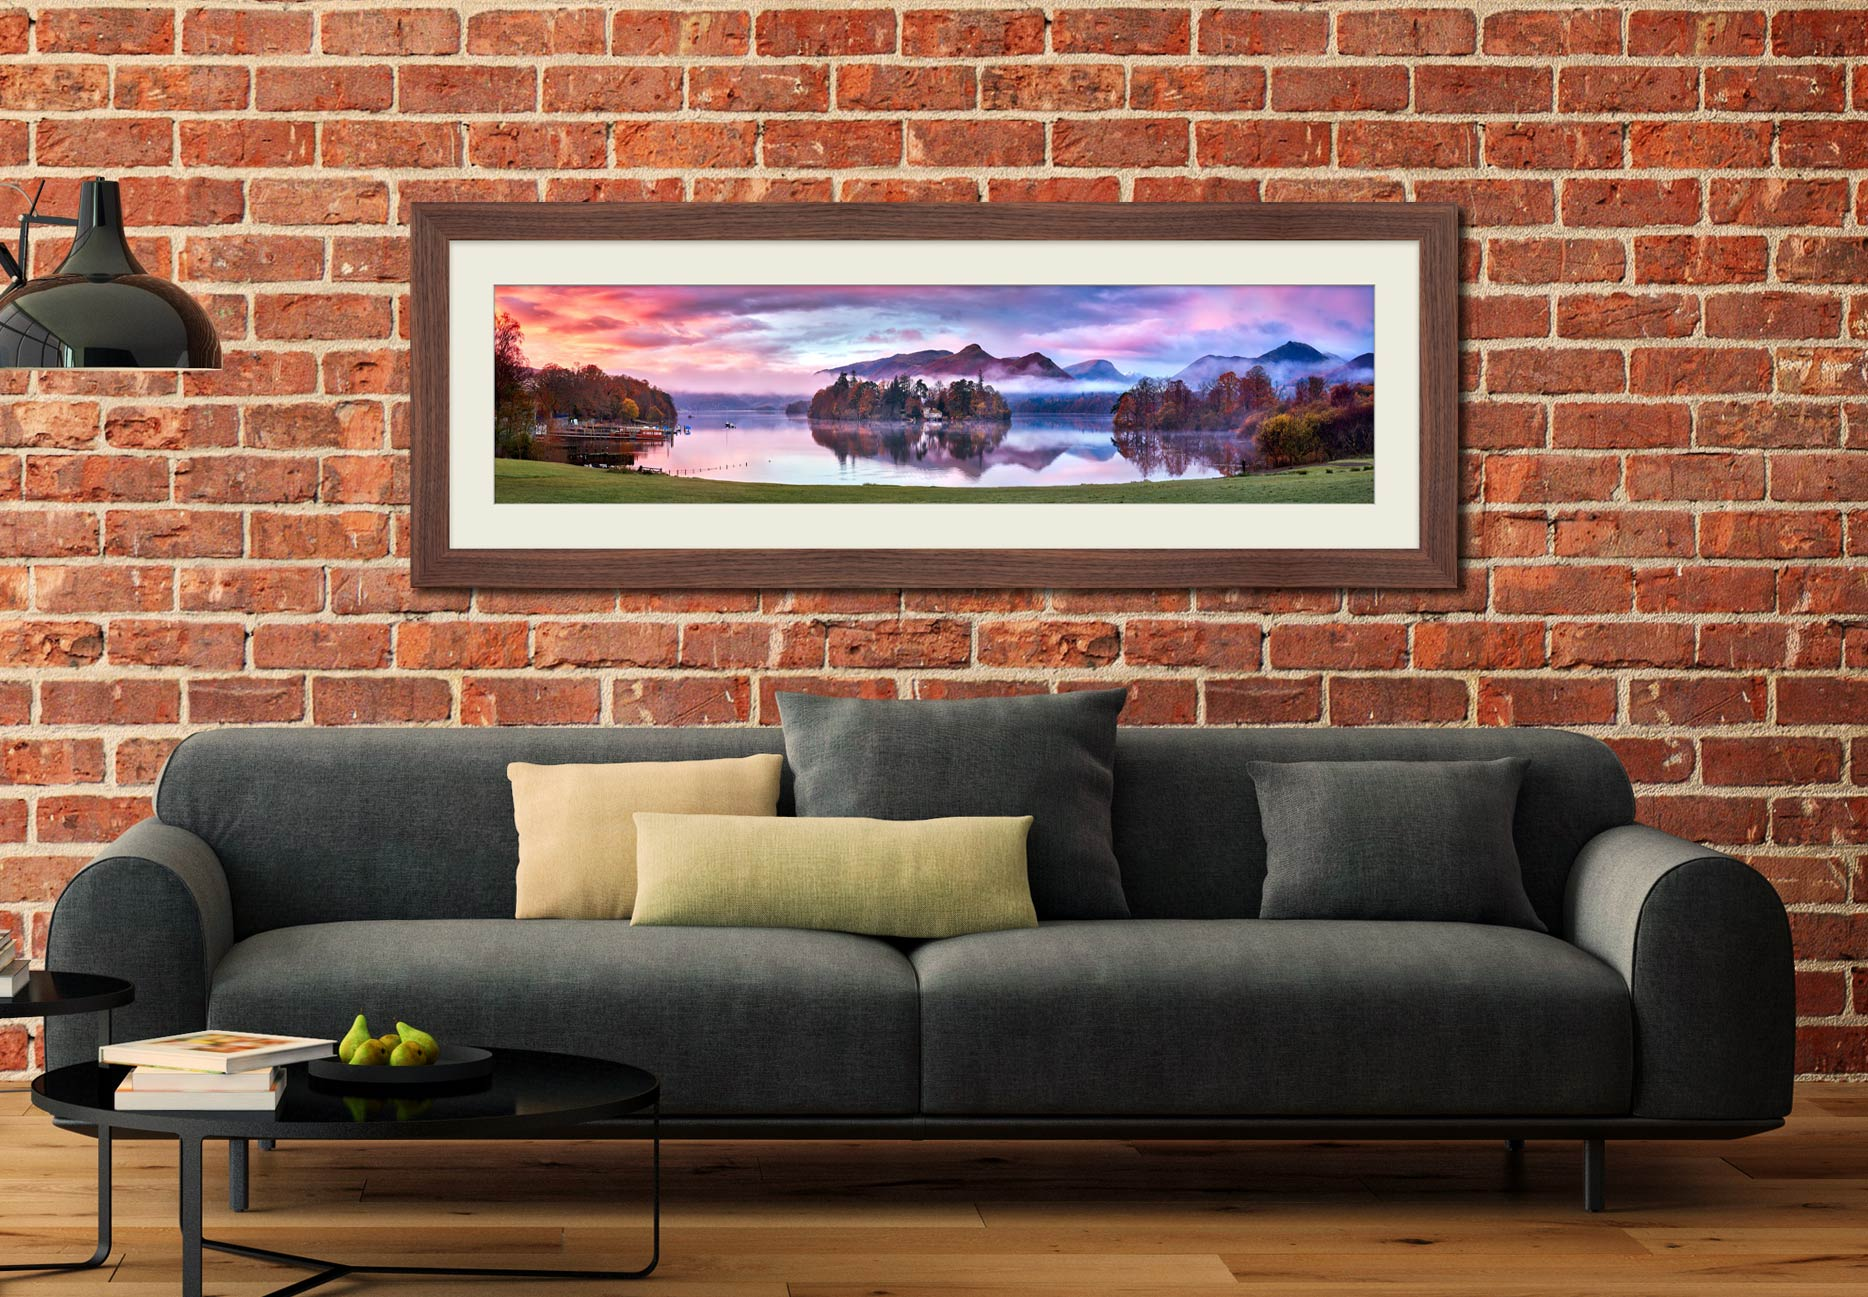 Derwent Water Sunrise - Framed Print with Mount on Wall